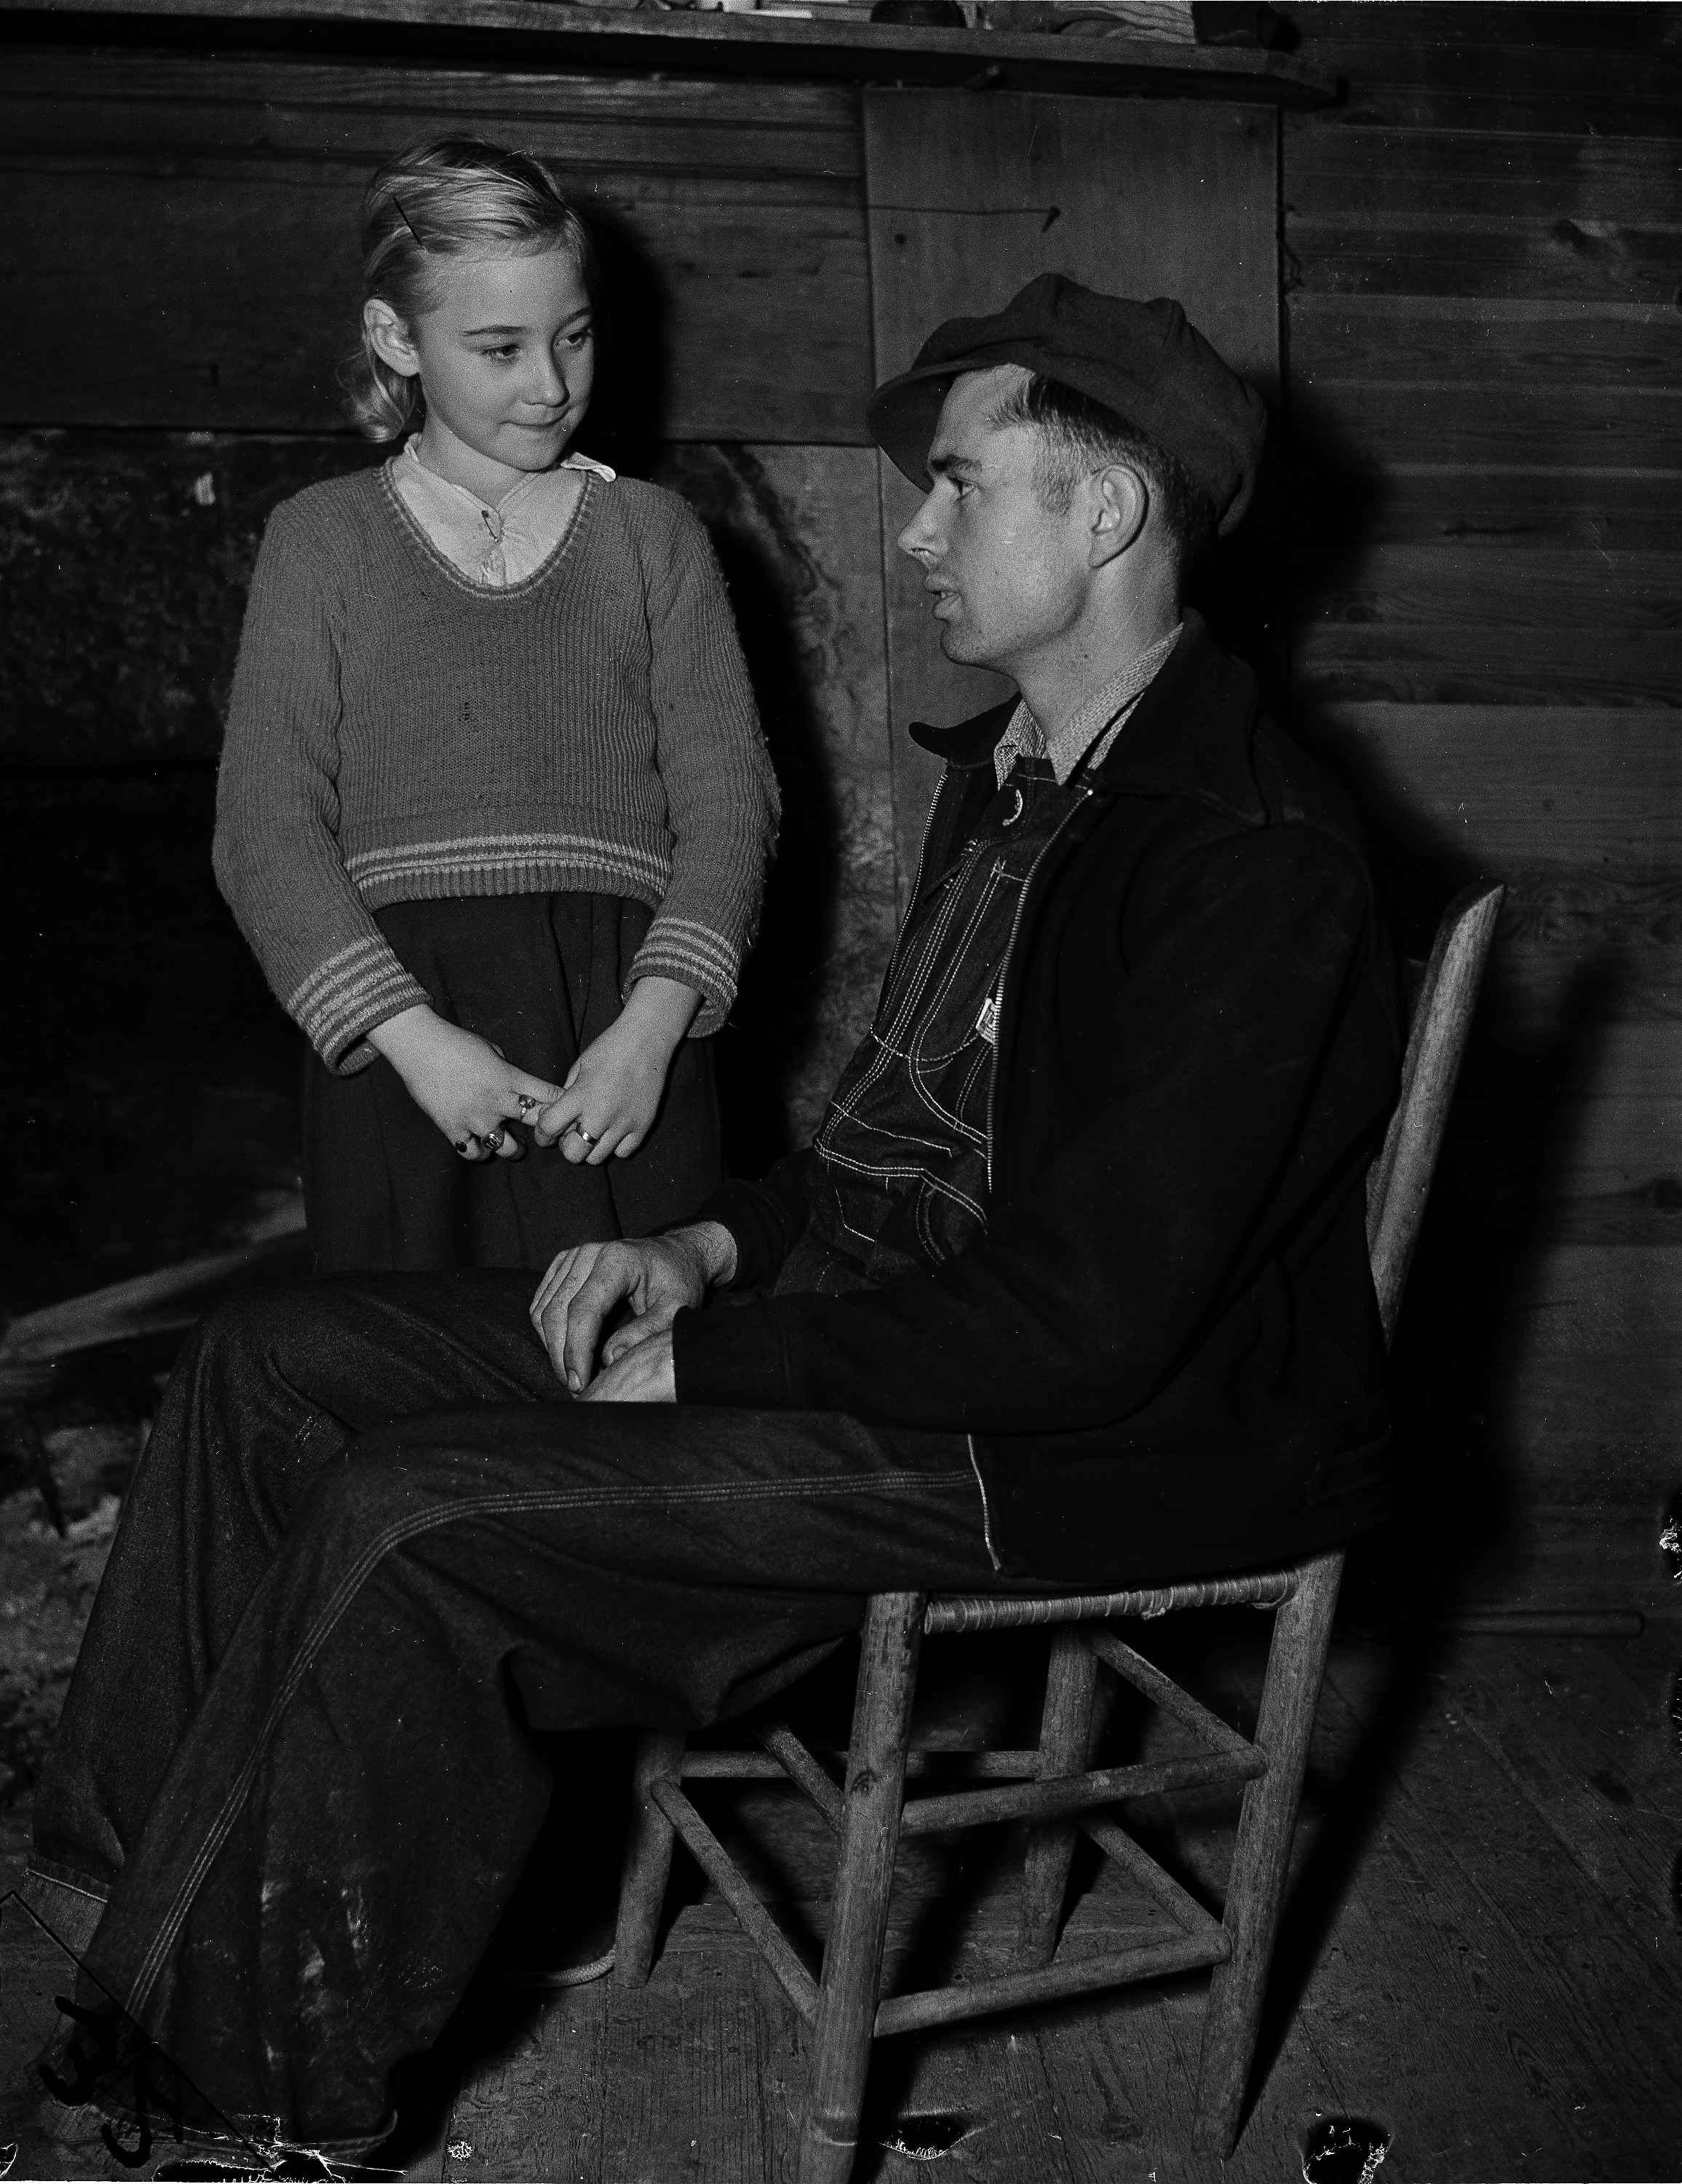 "Nine-year-old Eunice Winstead Johns and her six-foot mountaineer husband, Charlie Johns, 22, are shown at their home in Sneedville, Tenn., Feb. 2, 1937. Gov. Gordon Browning of Tennessee called the marriage, which provoked widespread discussion, ""Nothing Short of Tragedy."" (AP Photo)"